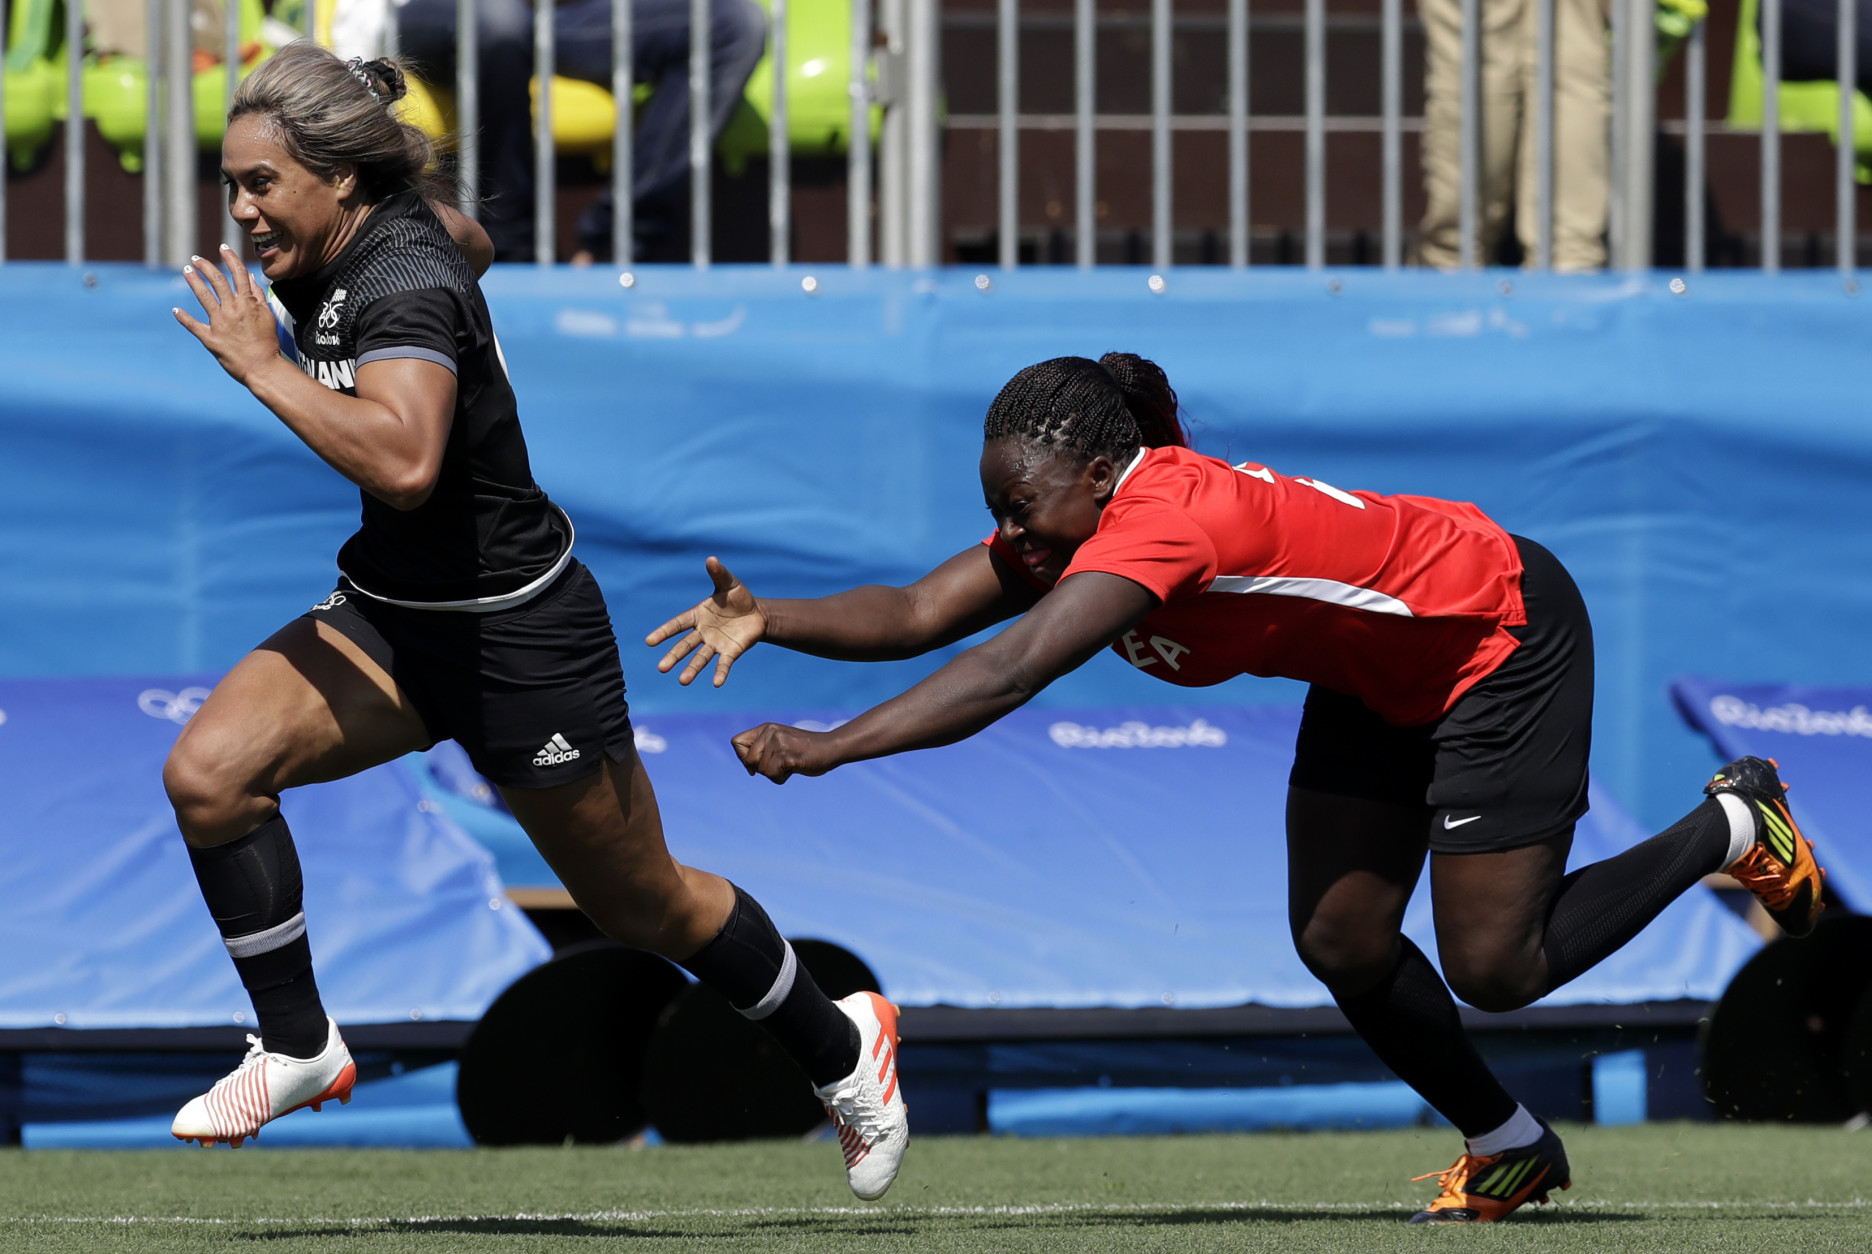 New Zealand's Huriana Manuel, left, breaks away from Kenya's Janet Owino, to score a try during the women's rugby sevens match between New Zealand and Kenya at the Summer Olympics in Rio de Janeiro, Brazil, Saturday, Aug. 6, 2016. (AP Photo/Themba Hadebe)